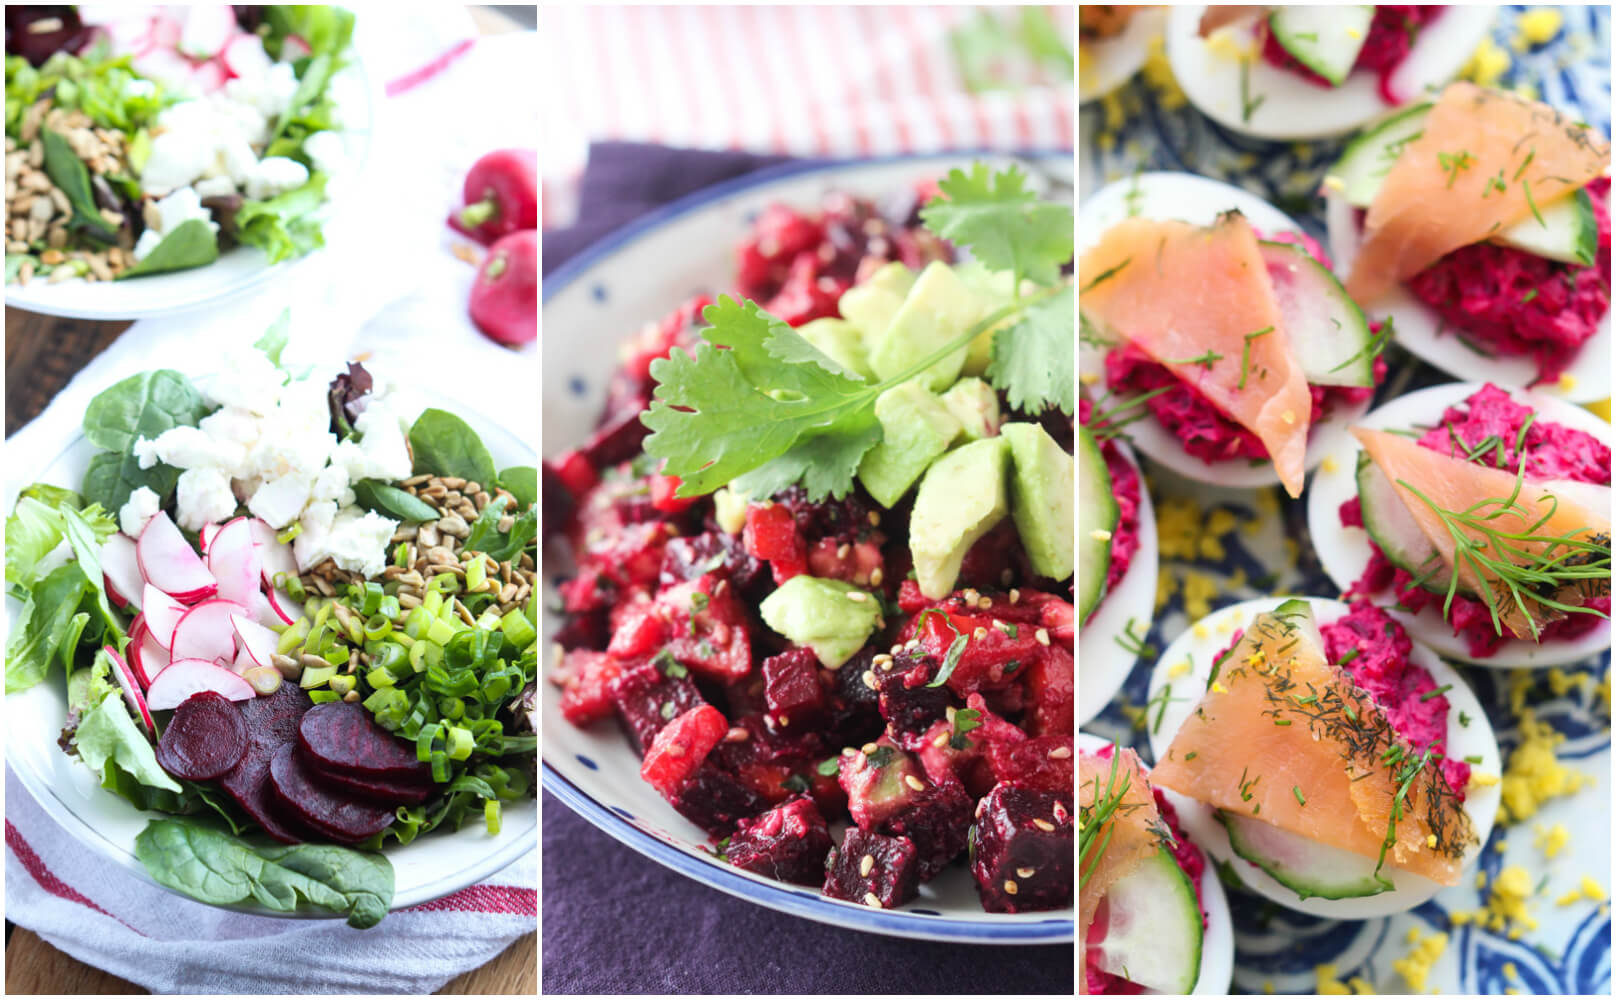 Best beet recipes + guide to spring produce | littlebroken.com @littlebroken